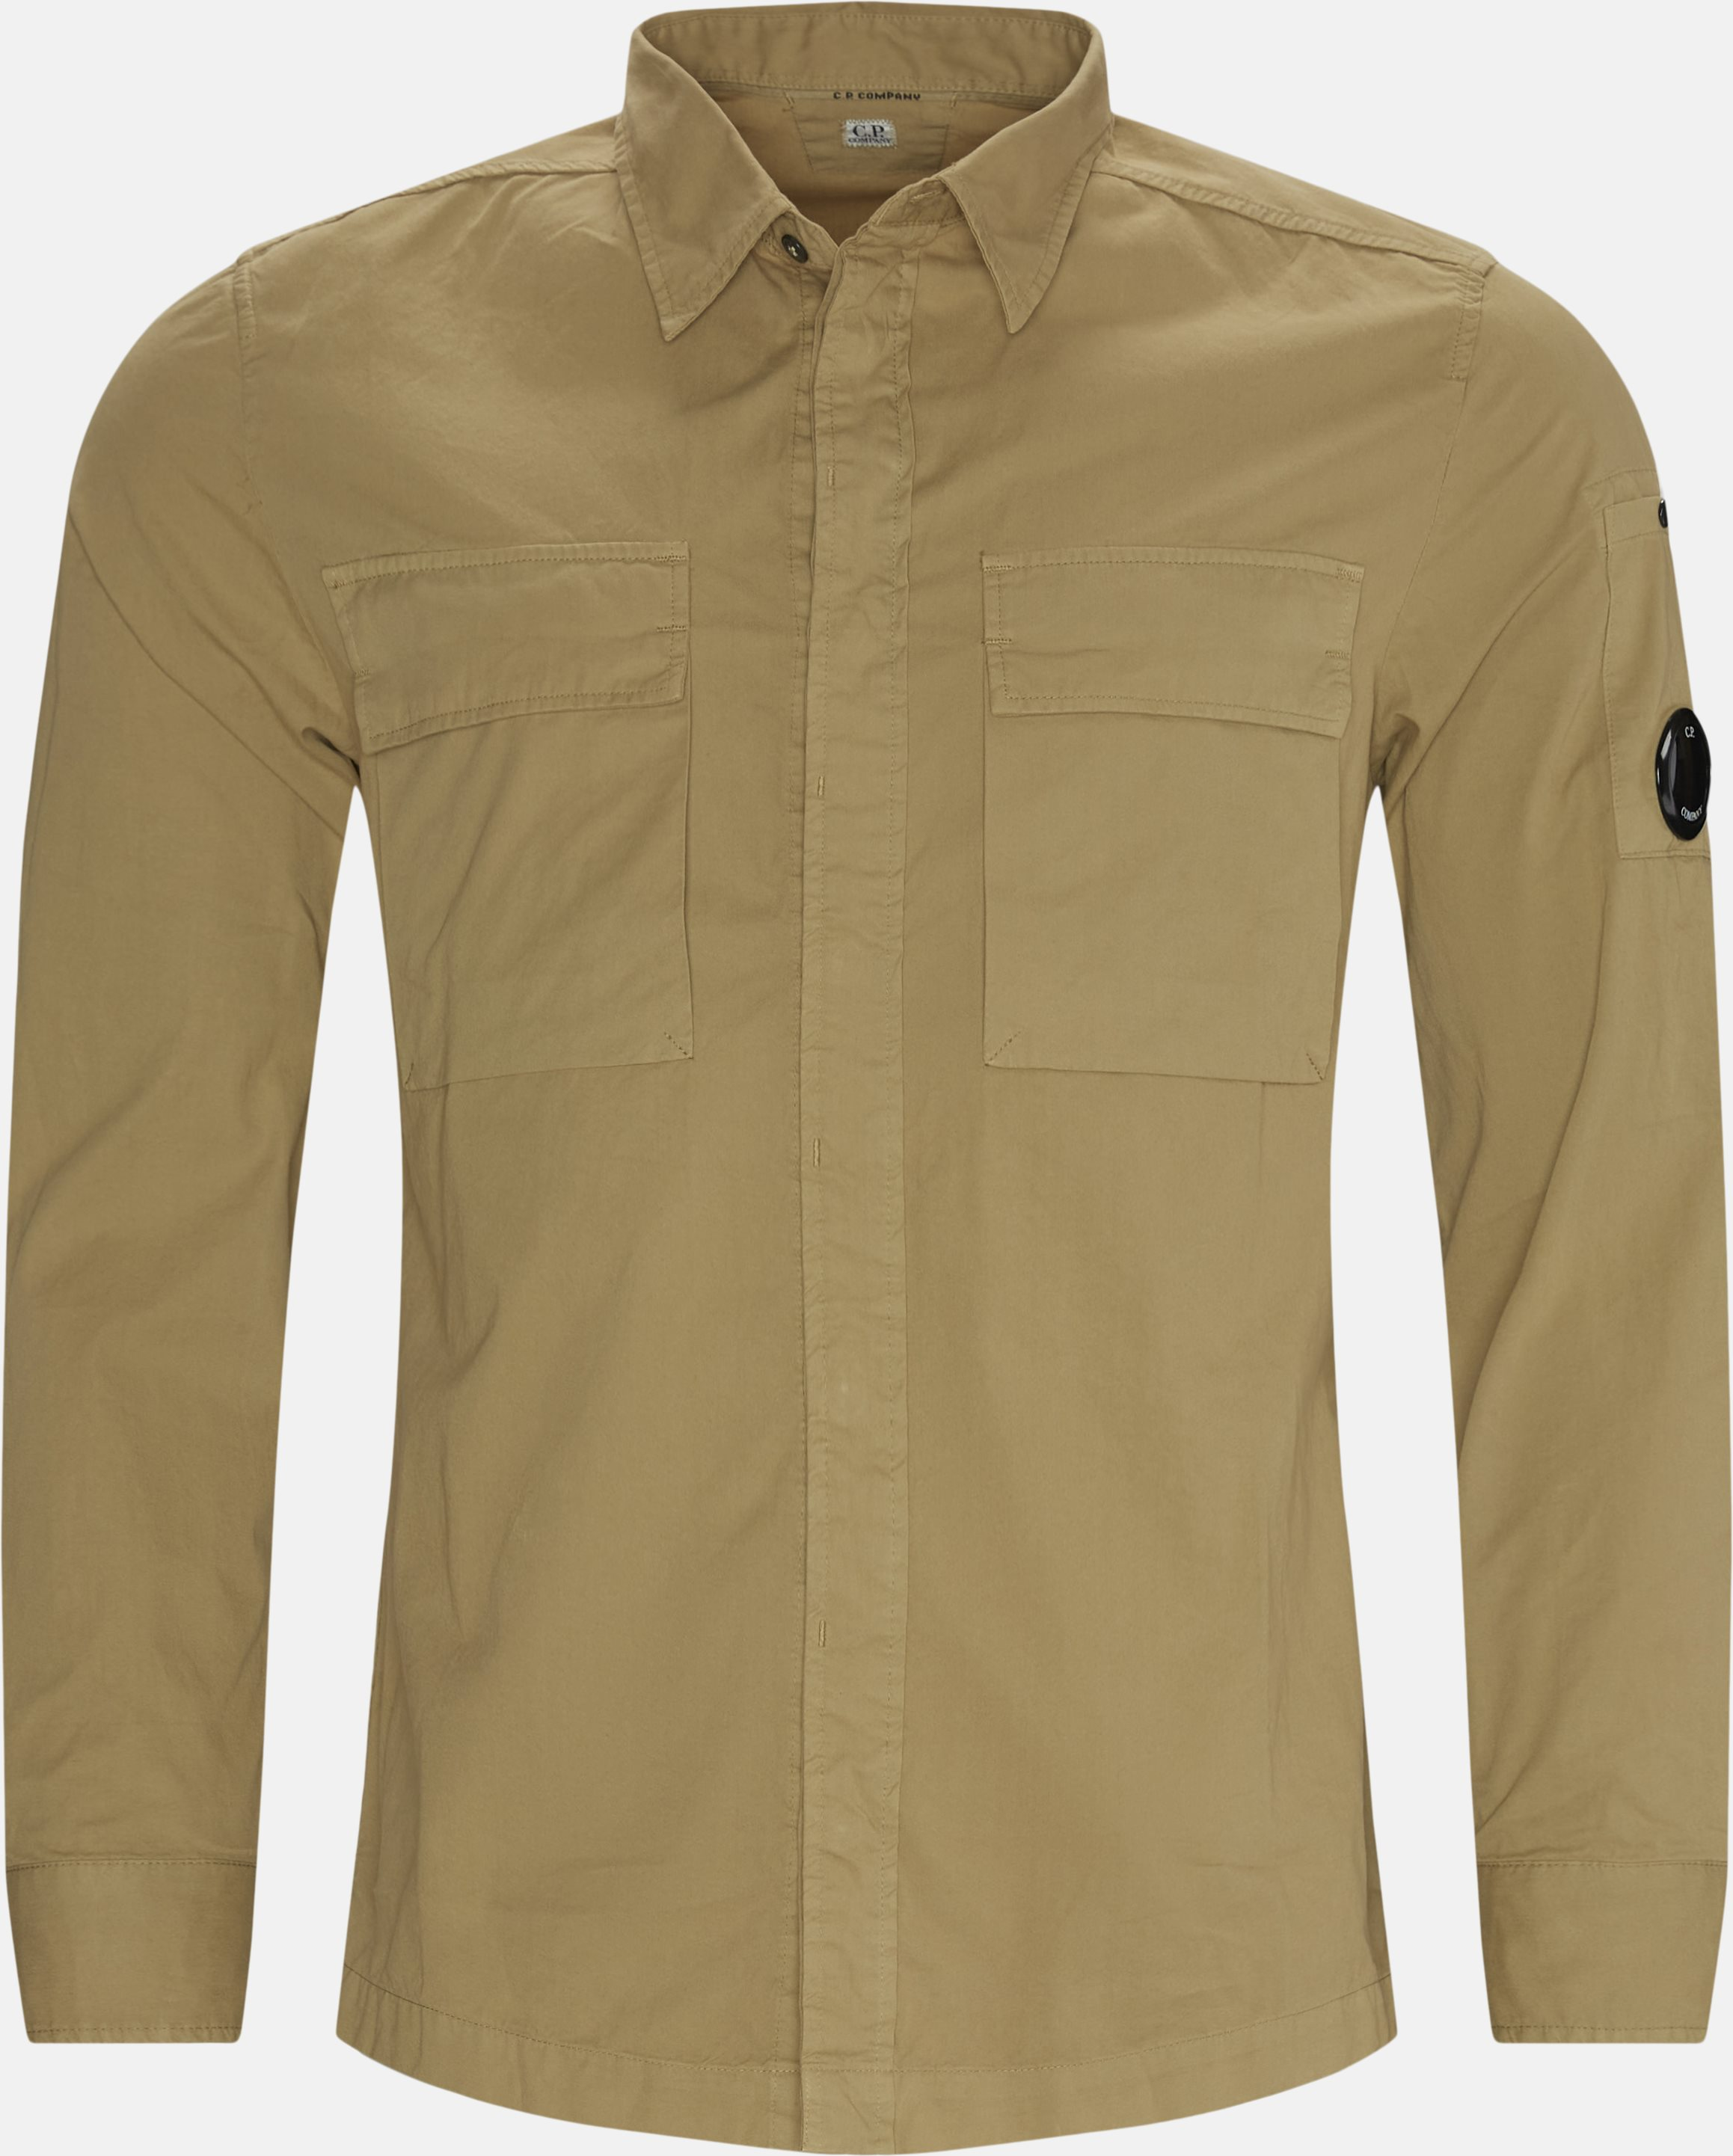 Emerized Gabardine Garment Dyed Shirt - Shirts - Regular - Sand